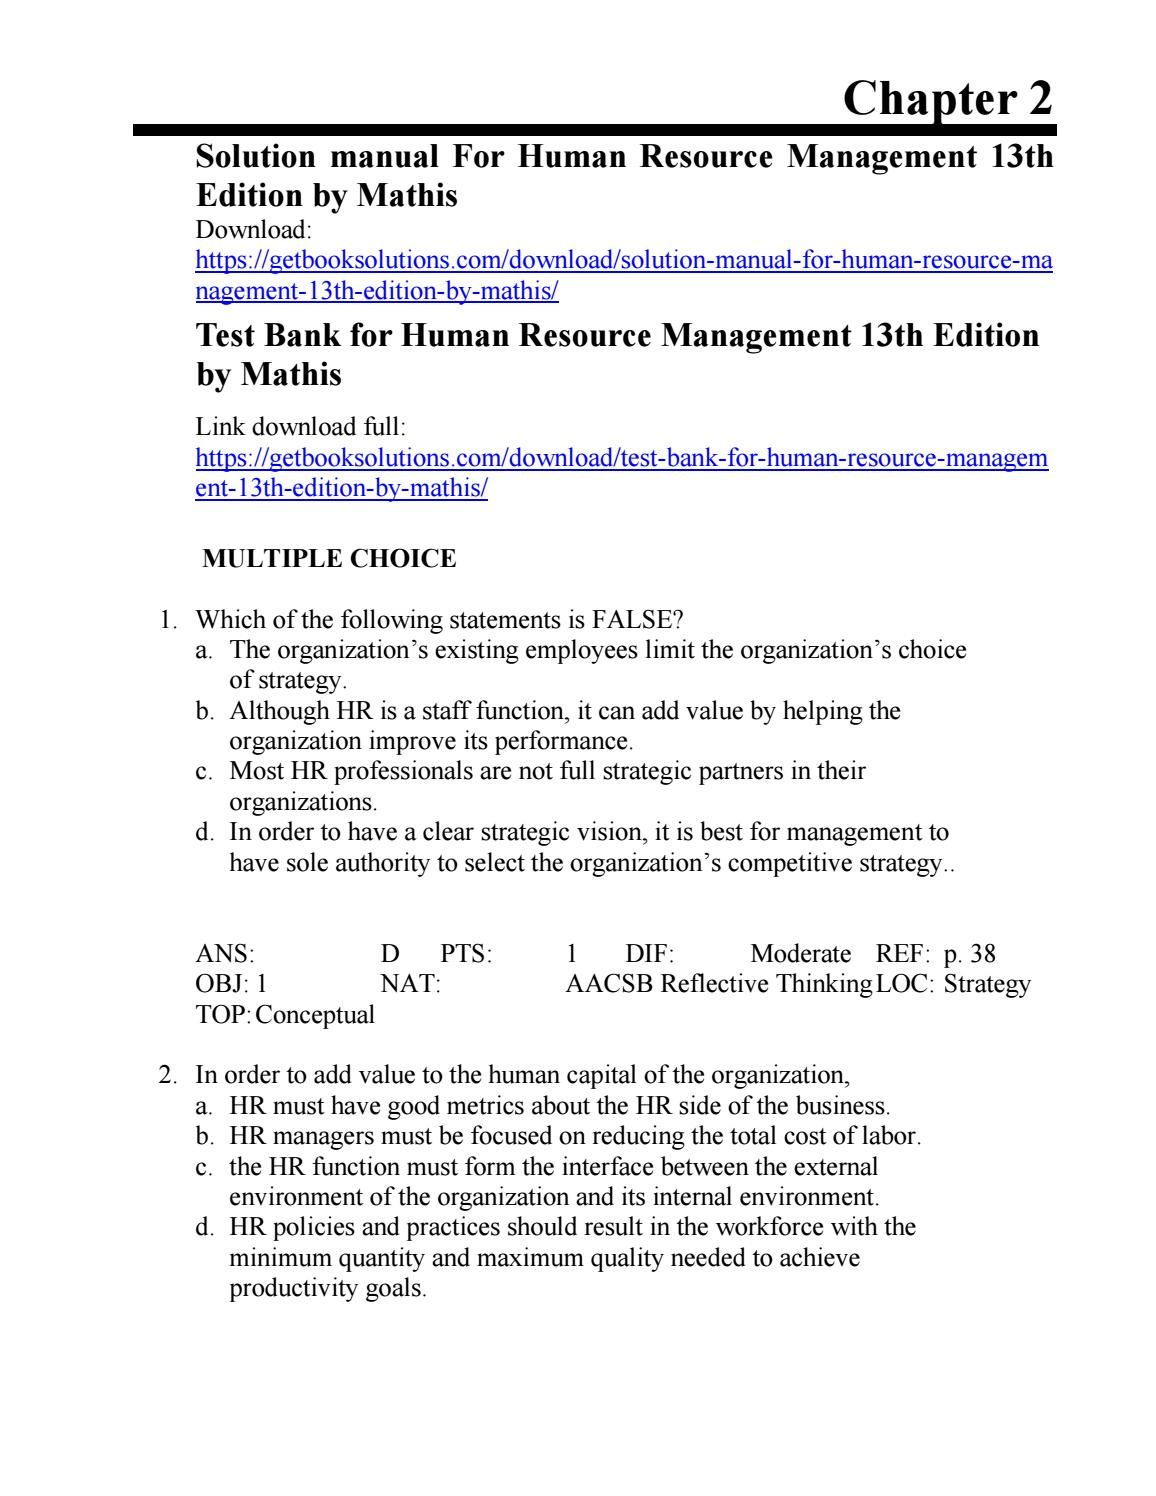 Solution manual for human resource management 13th edition by mathis